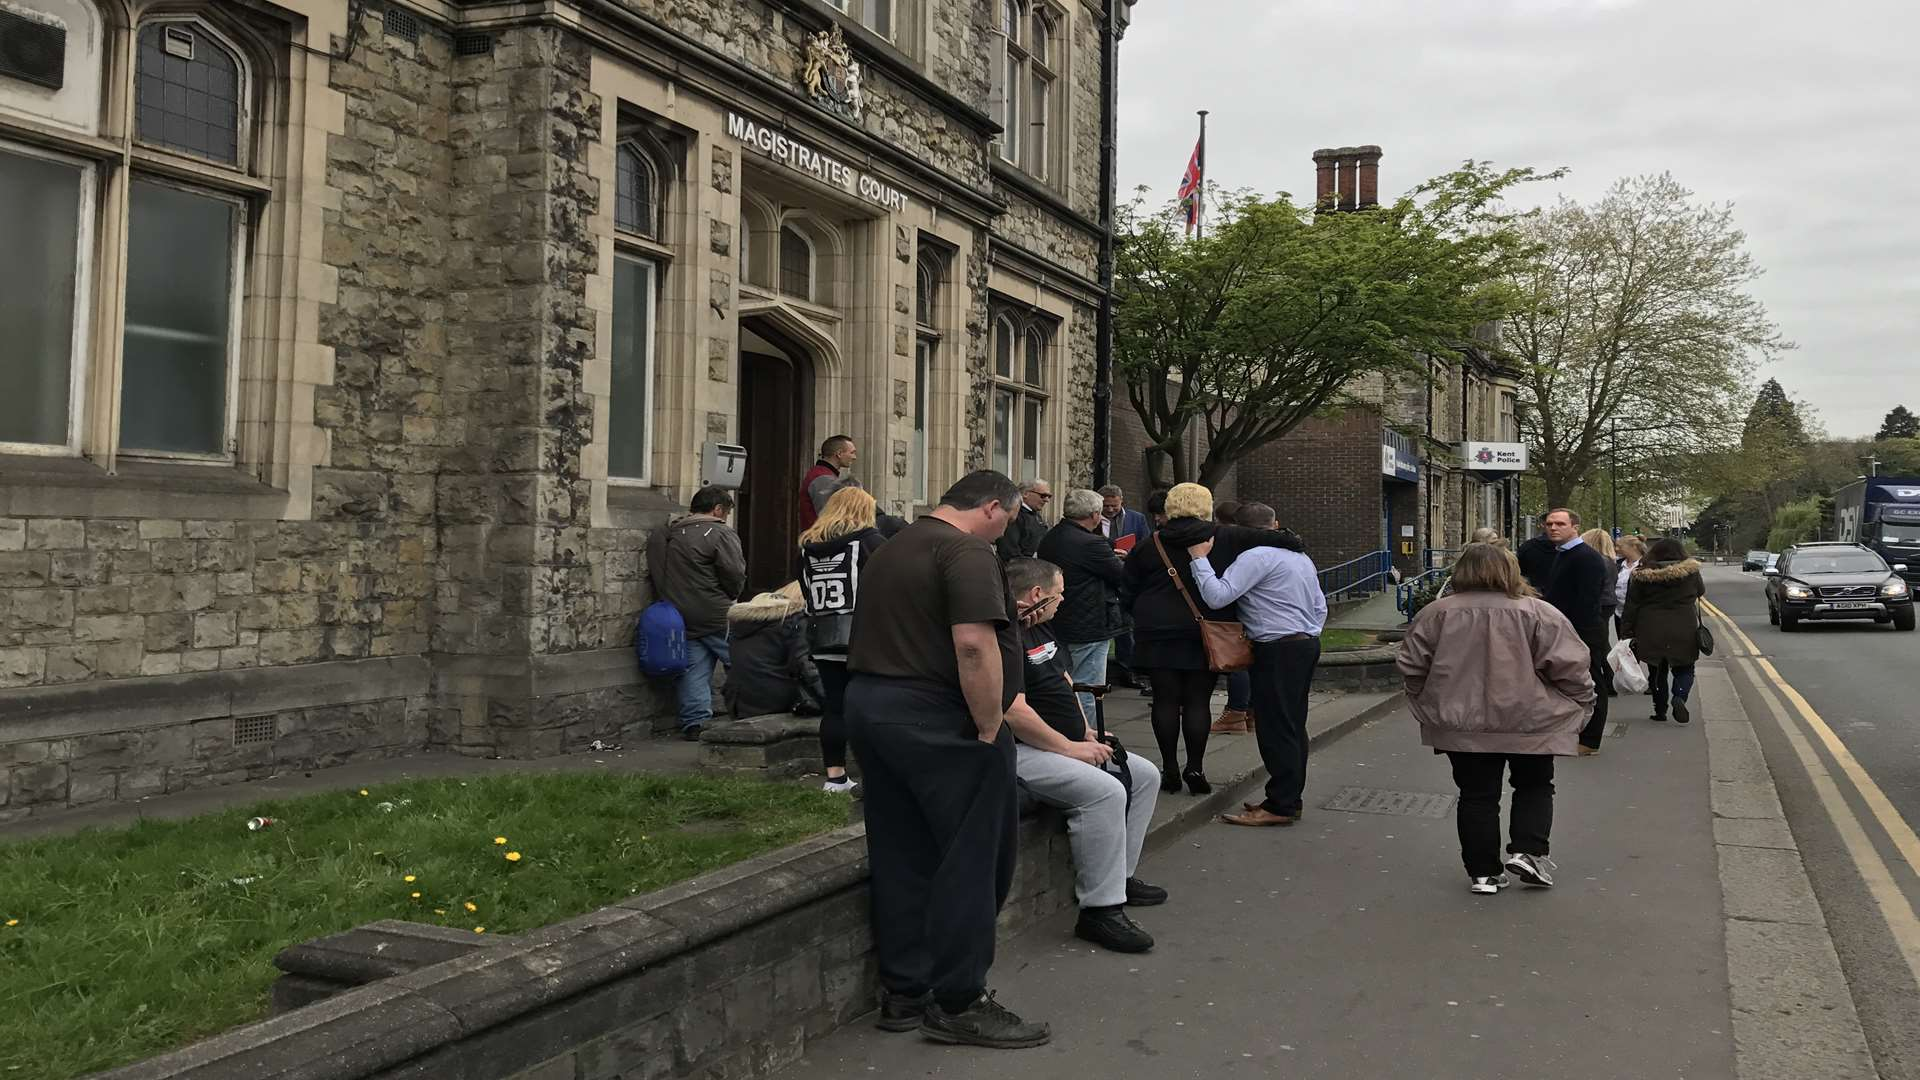 People waiting outside Maidstone Magistrates' Court were told all cases have been cancelled today